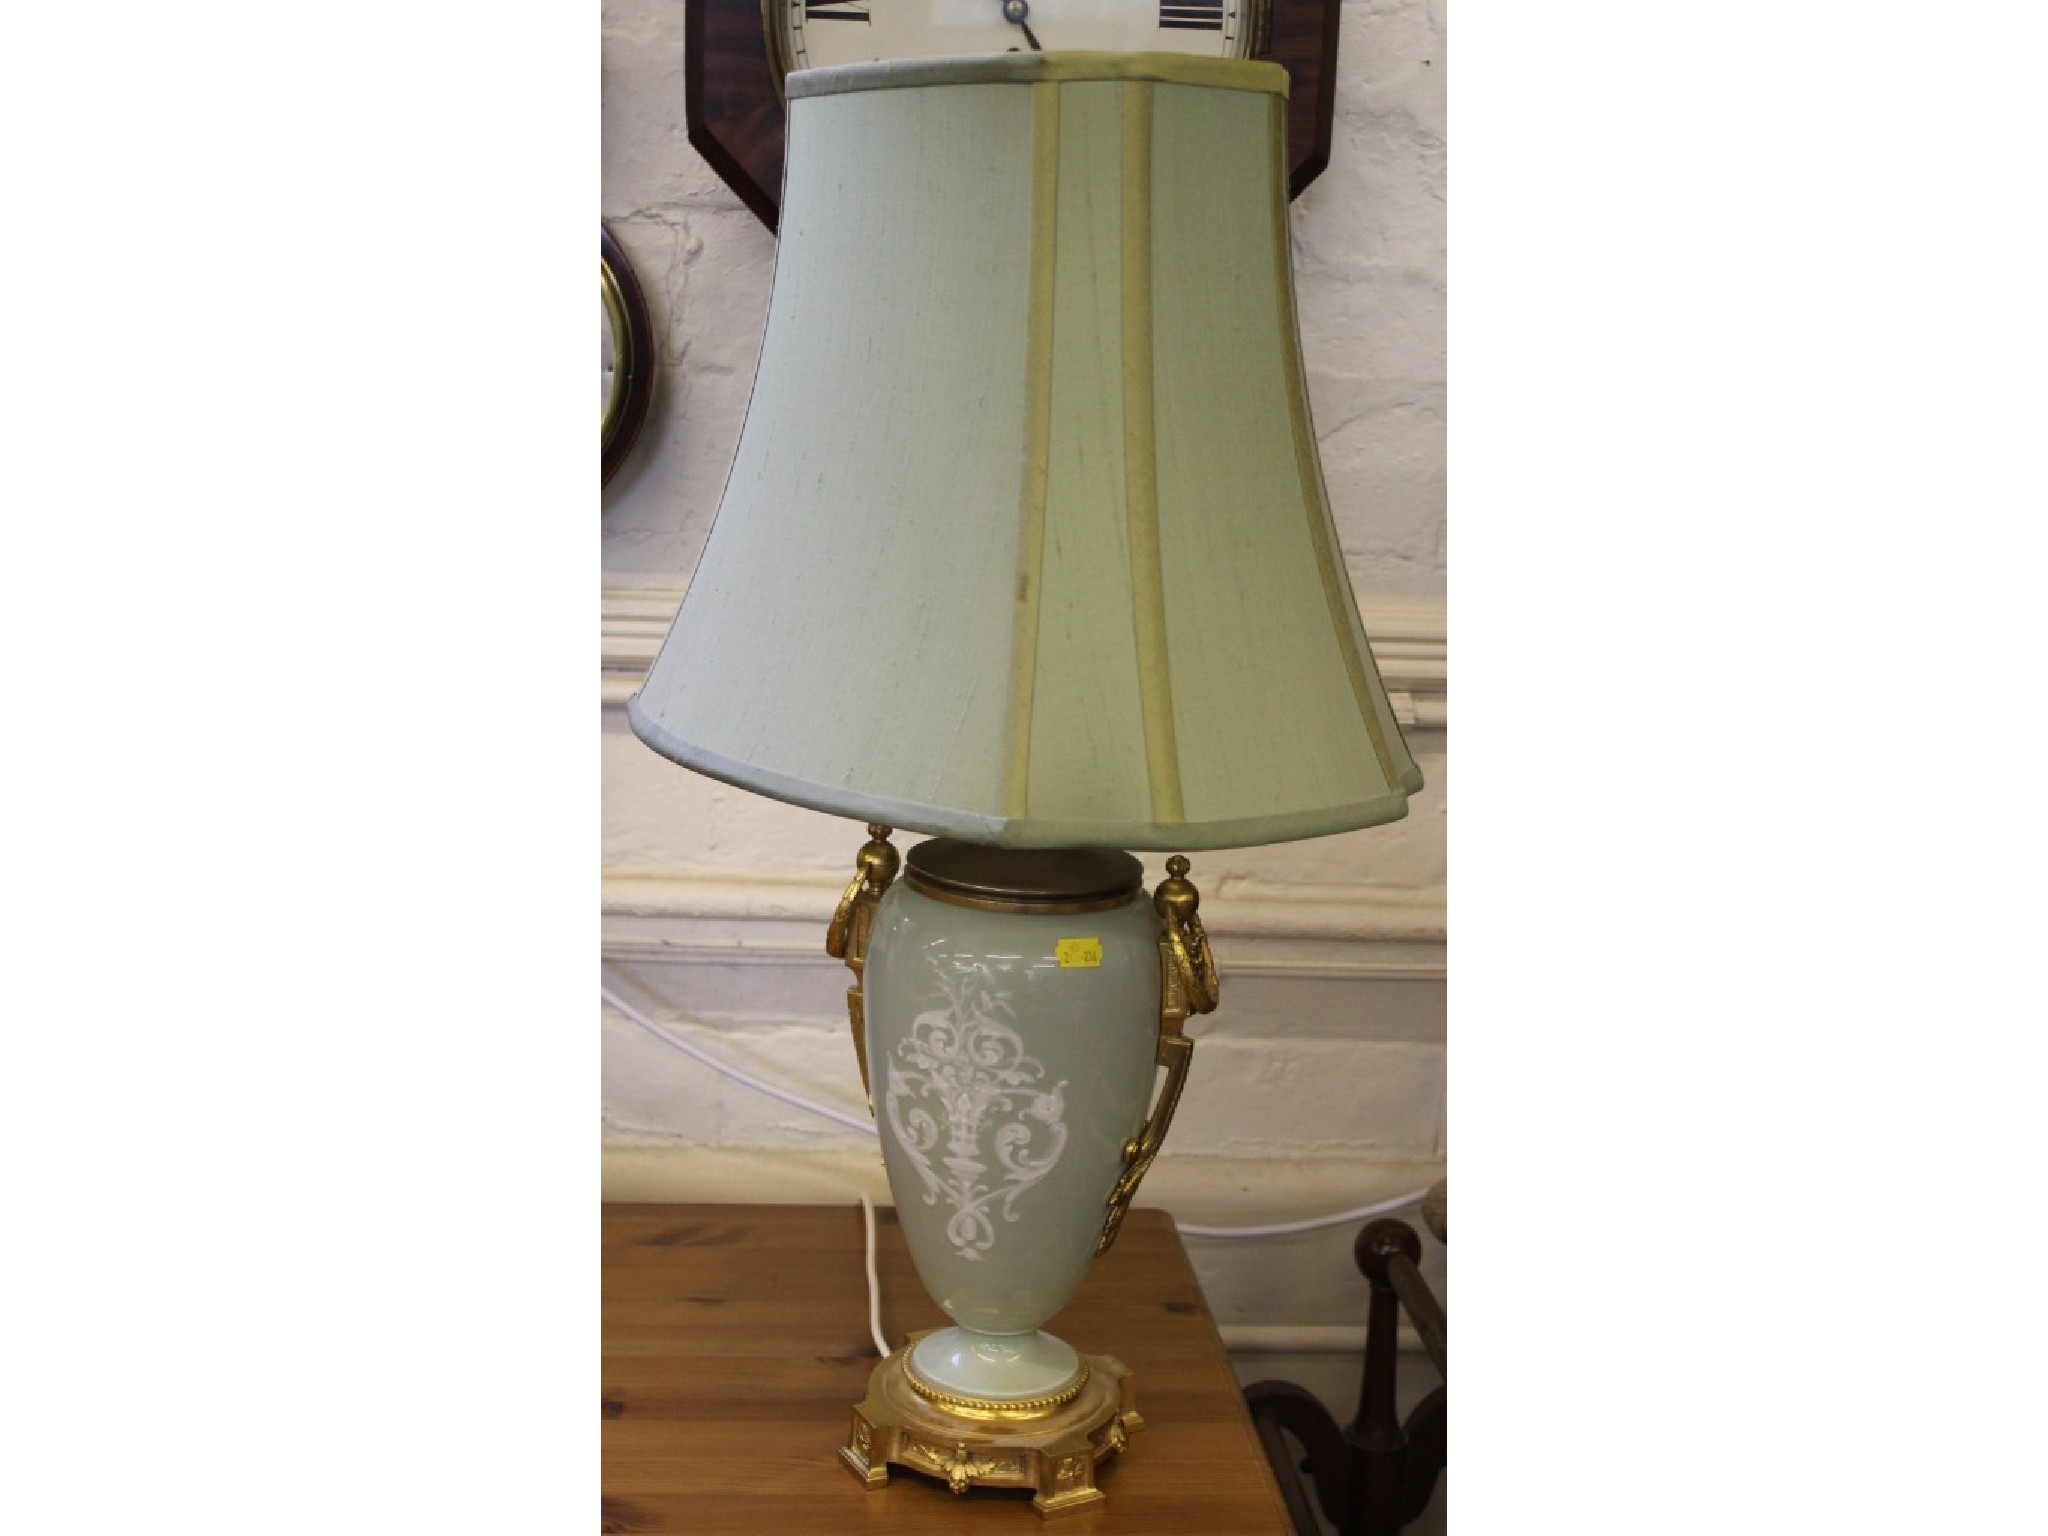 A gilt metal mounted and ceramic table top lamp in the French style, the green tapering vase with cameo style Roman figure